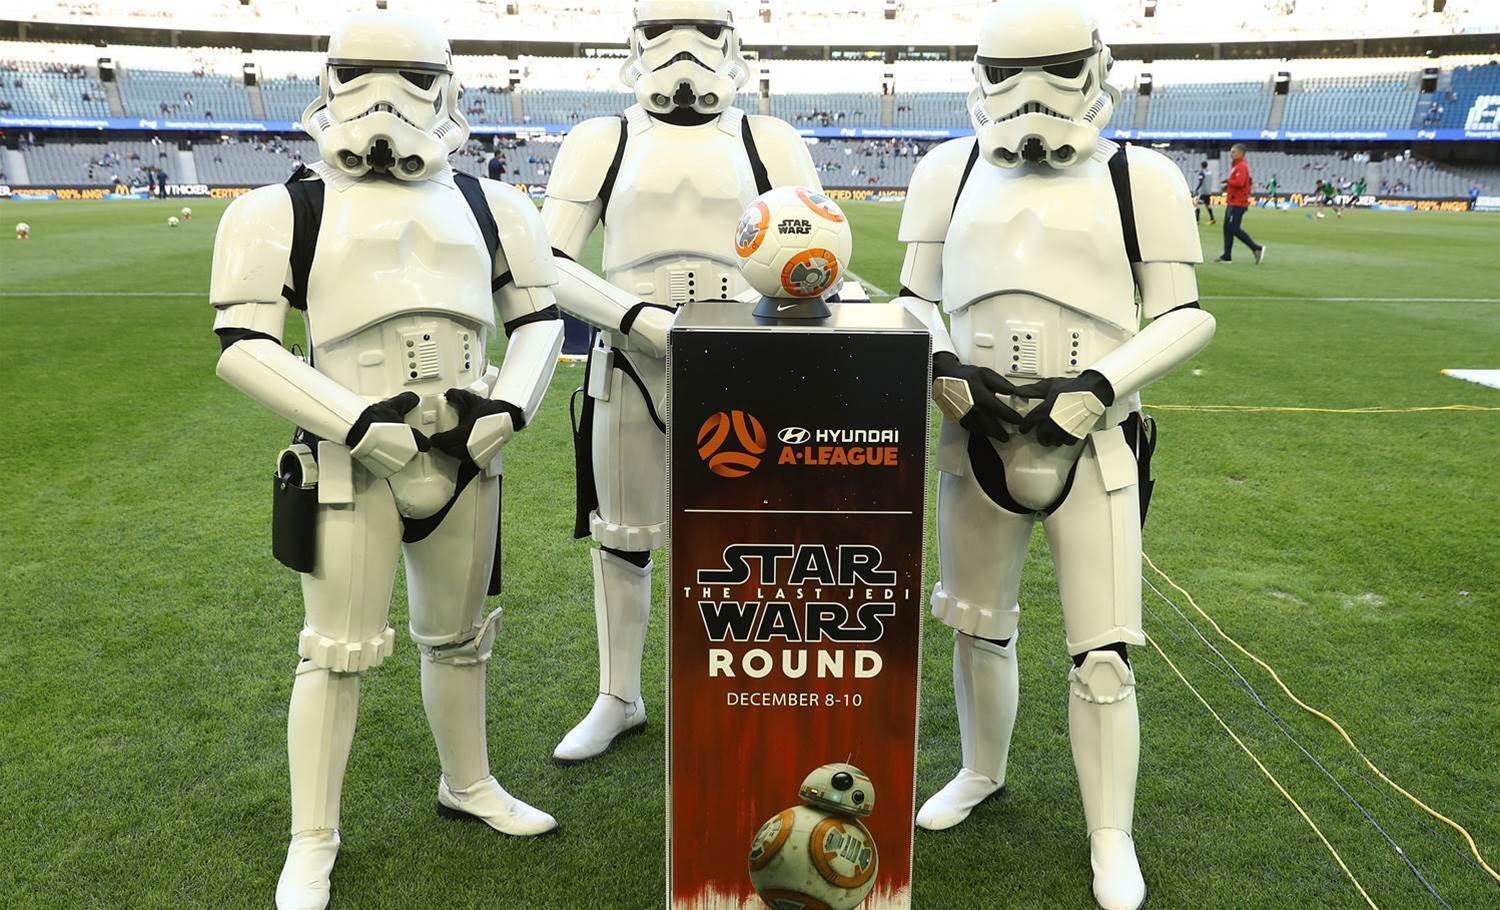 A-League pic special: Star Wars Round